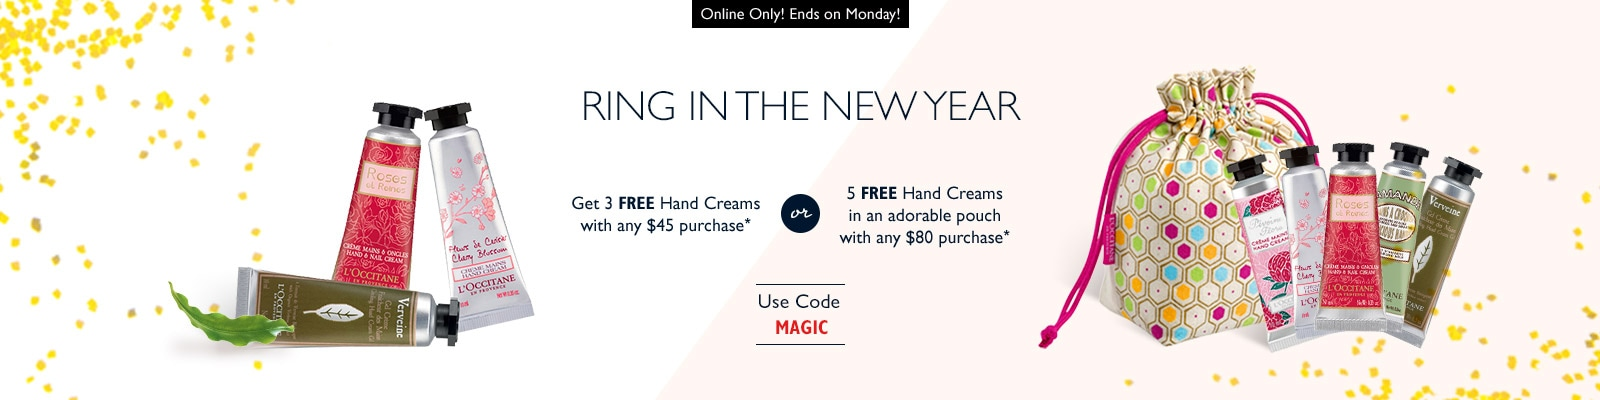 Receive a free 3-piece bonus gift with your $45 L'Occitane purchase